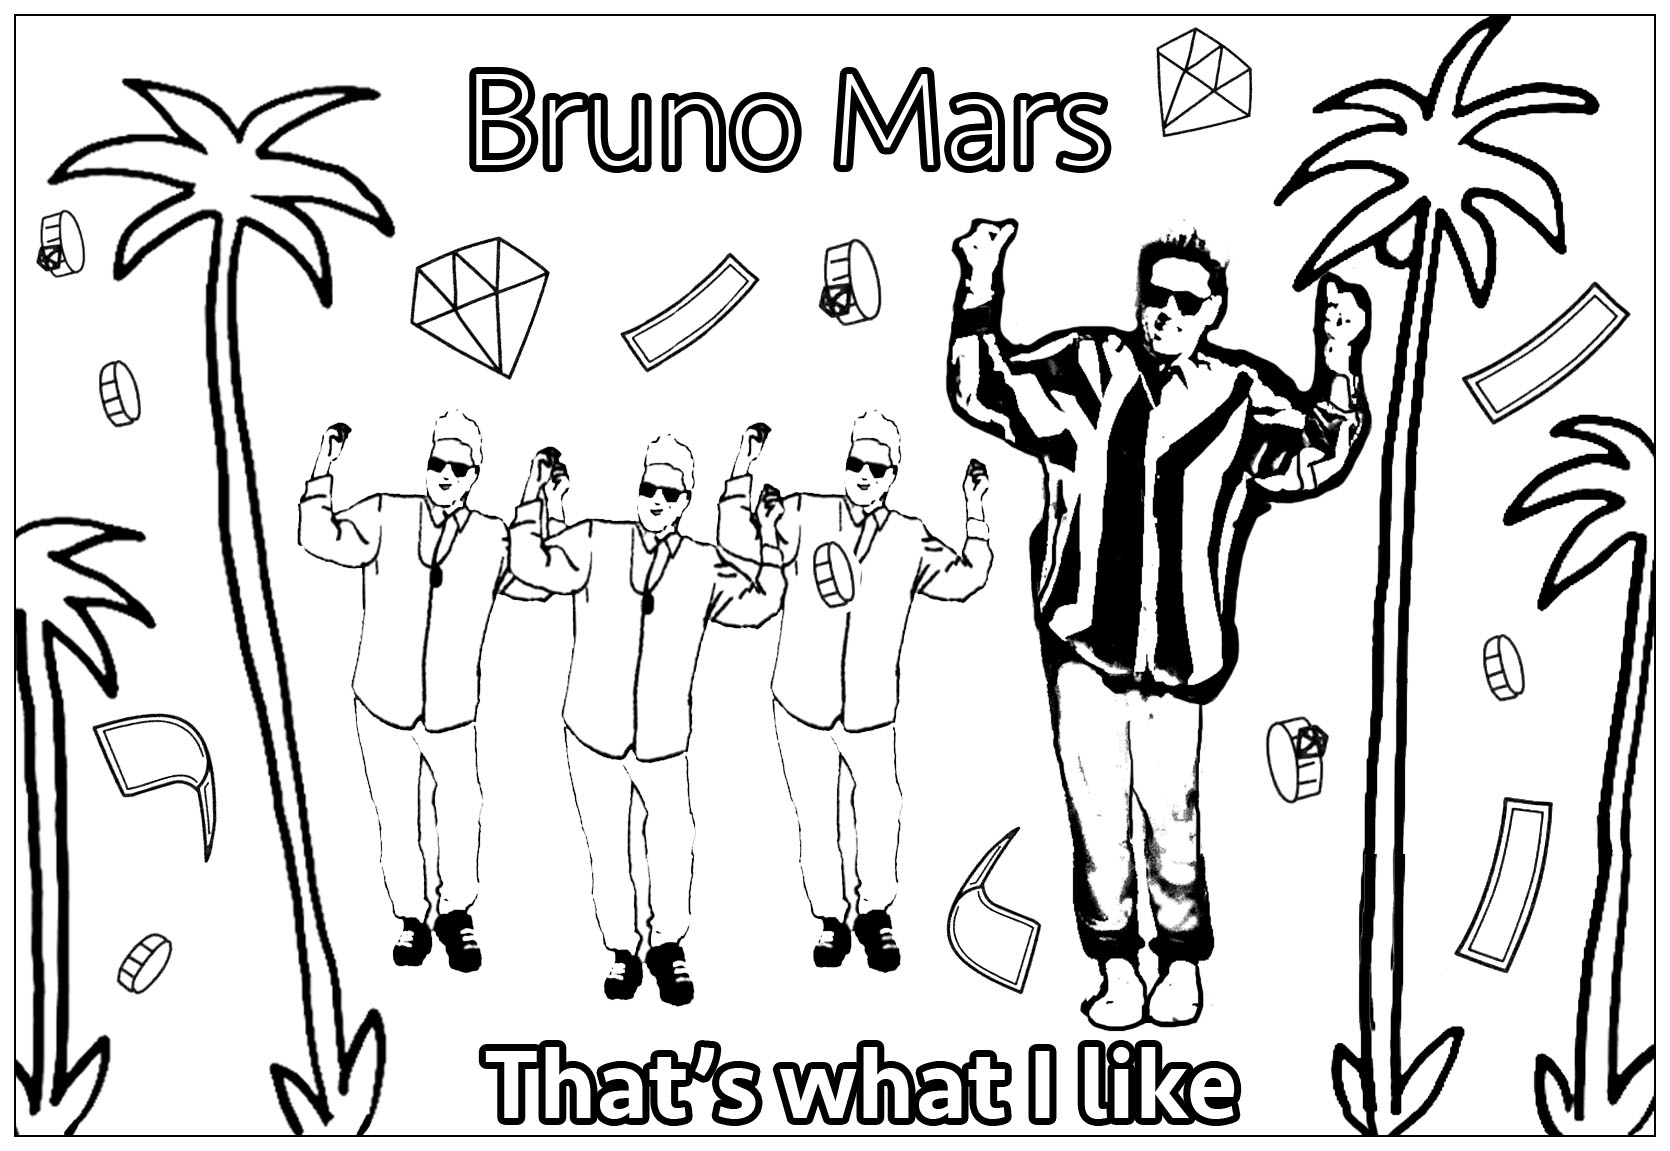 Coloriage inspiré du clip de Bruno Mars 'That's what I like'